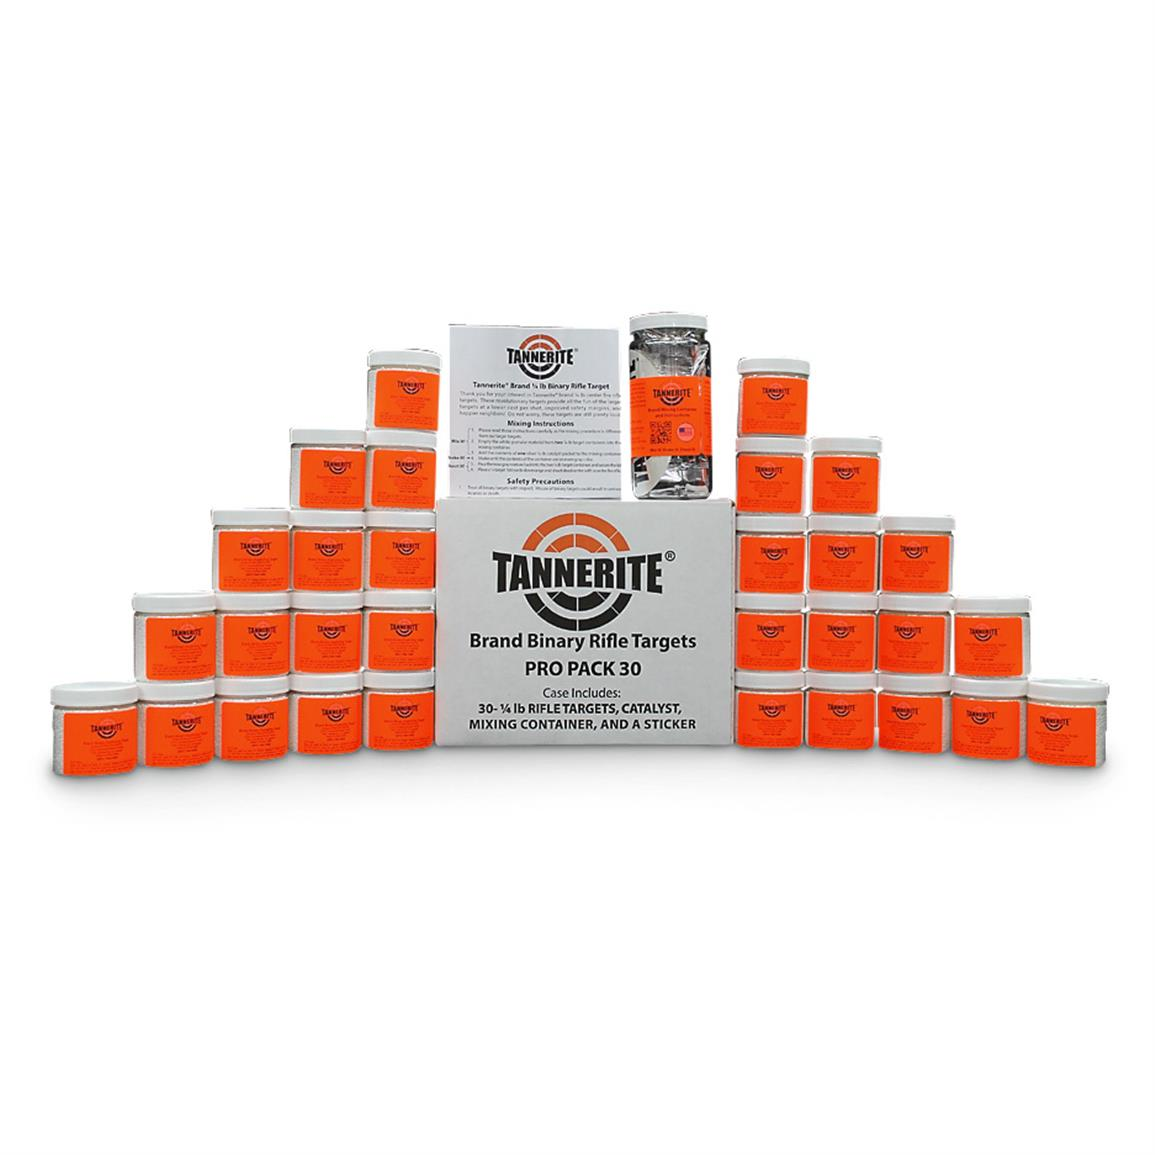 Tannerite 1/4-lb. Bricks Pro Pack Rifle Targets, 30 Pack